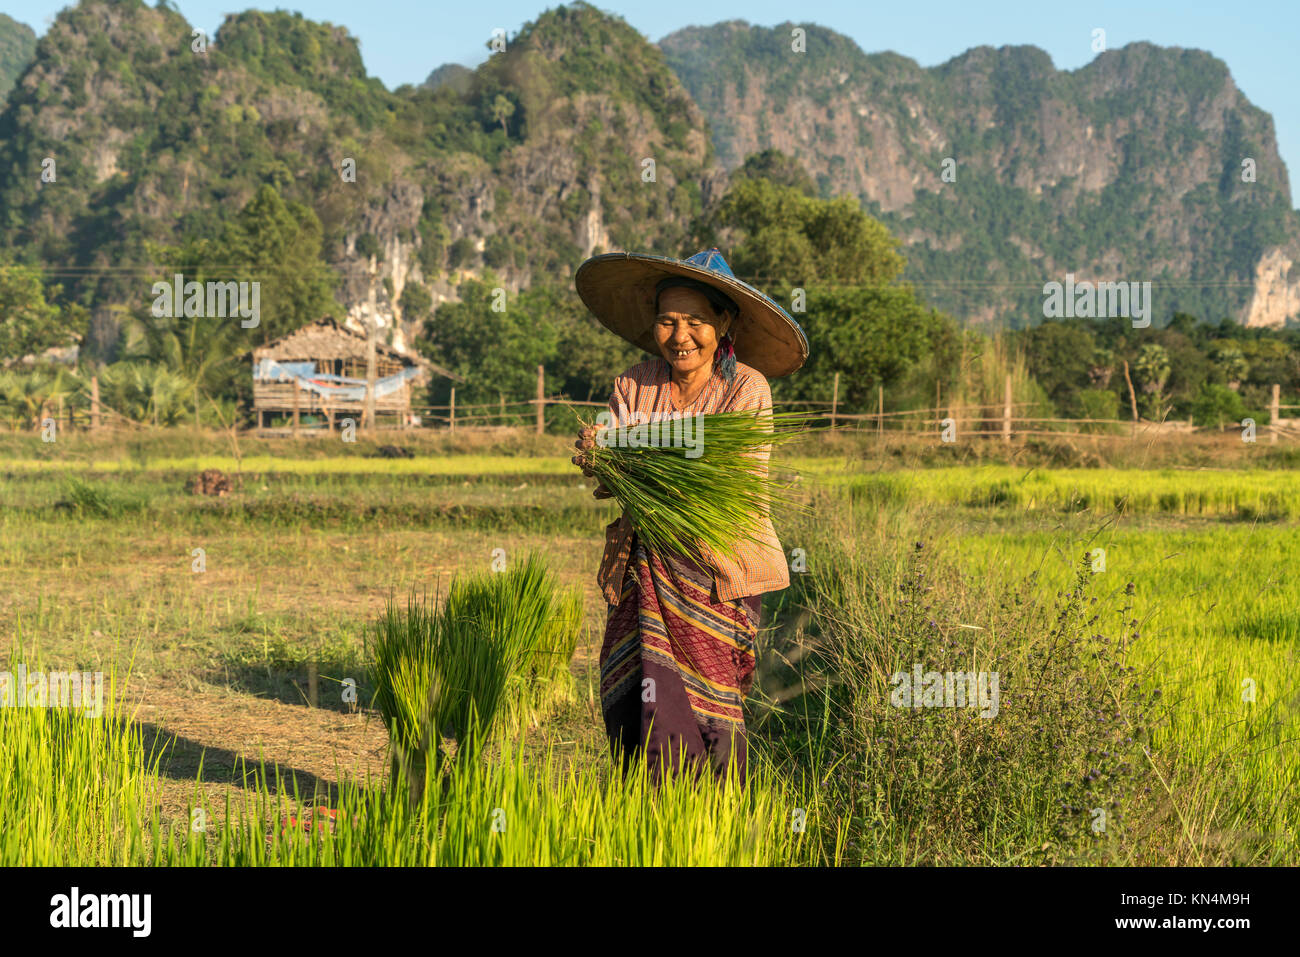 Elder woman in the field at the rice harvest, Hpa-an, Myanmar Stock Photo